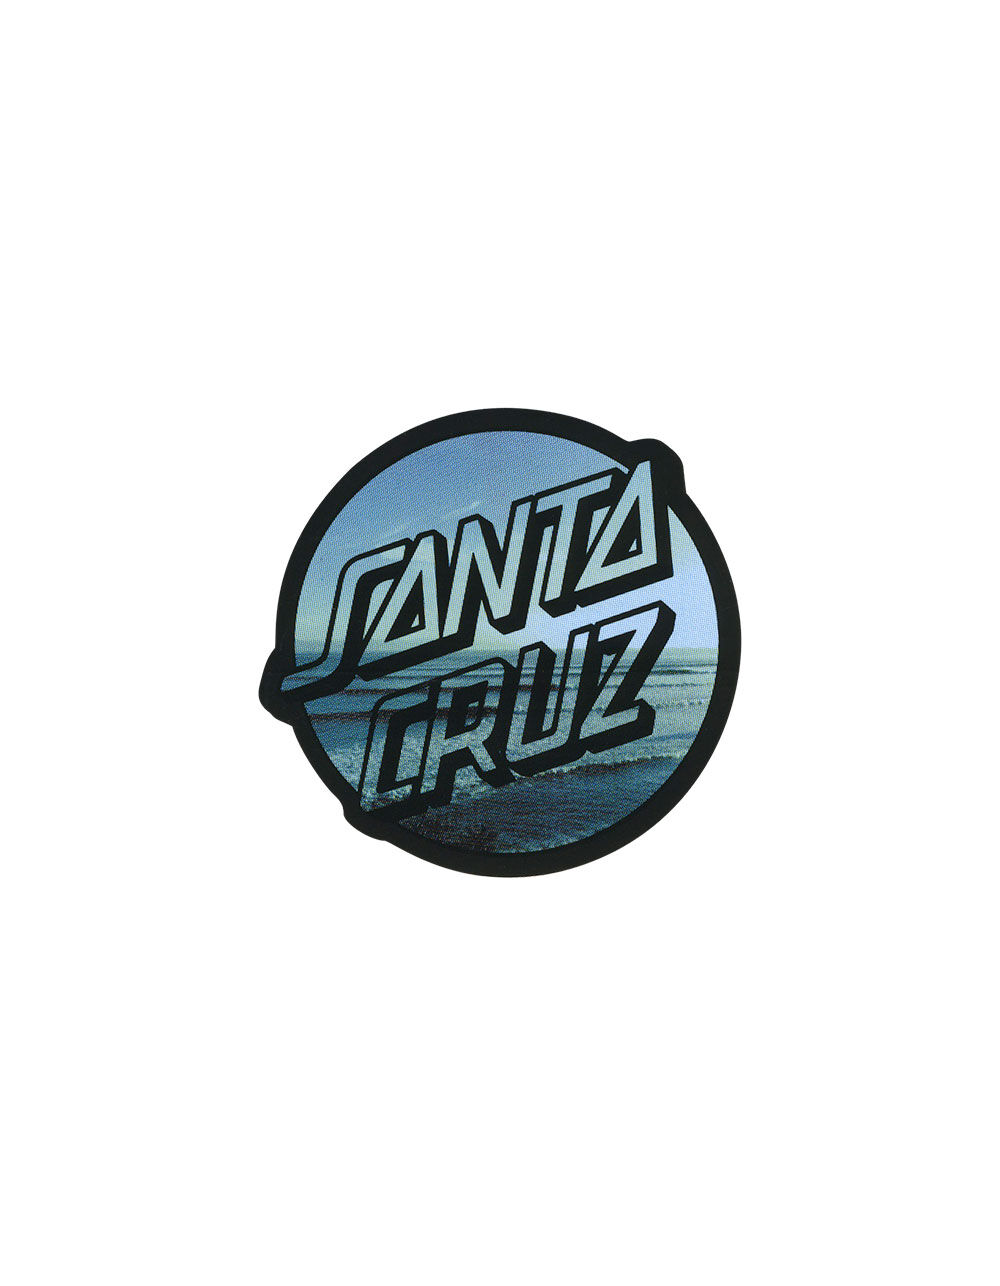 SANTA CRUZ Beach Sticker